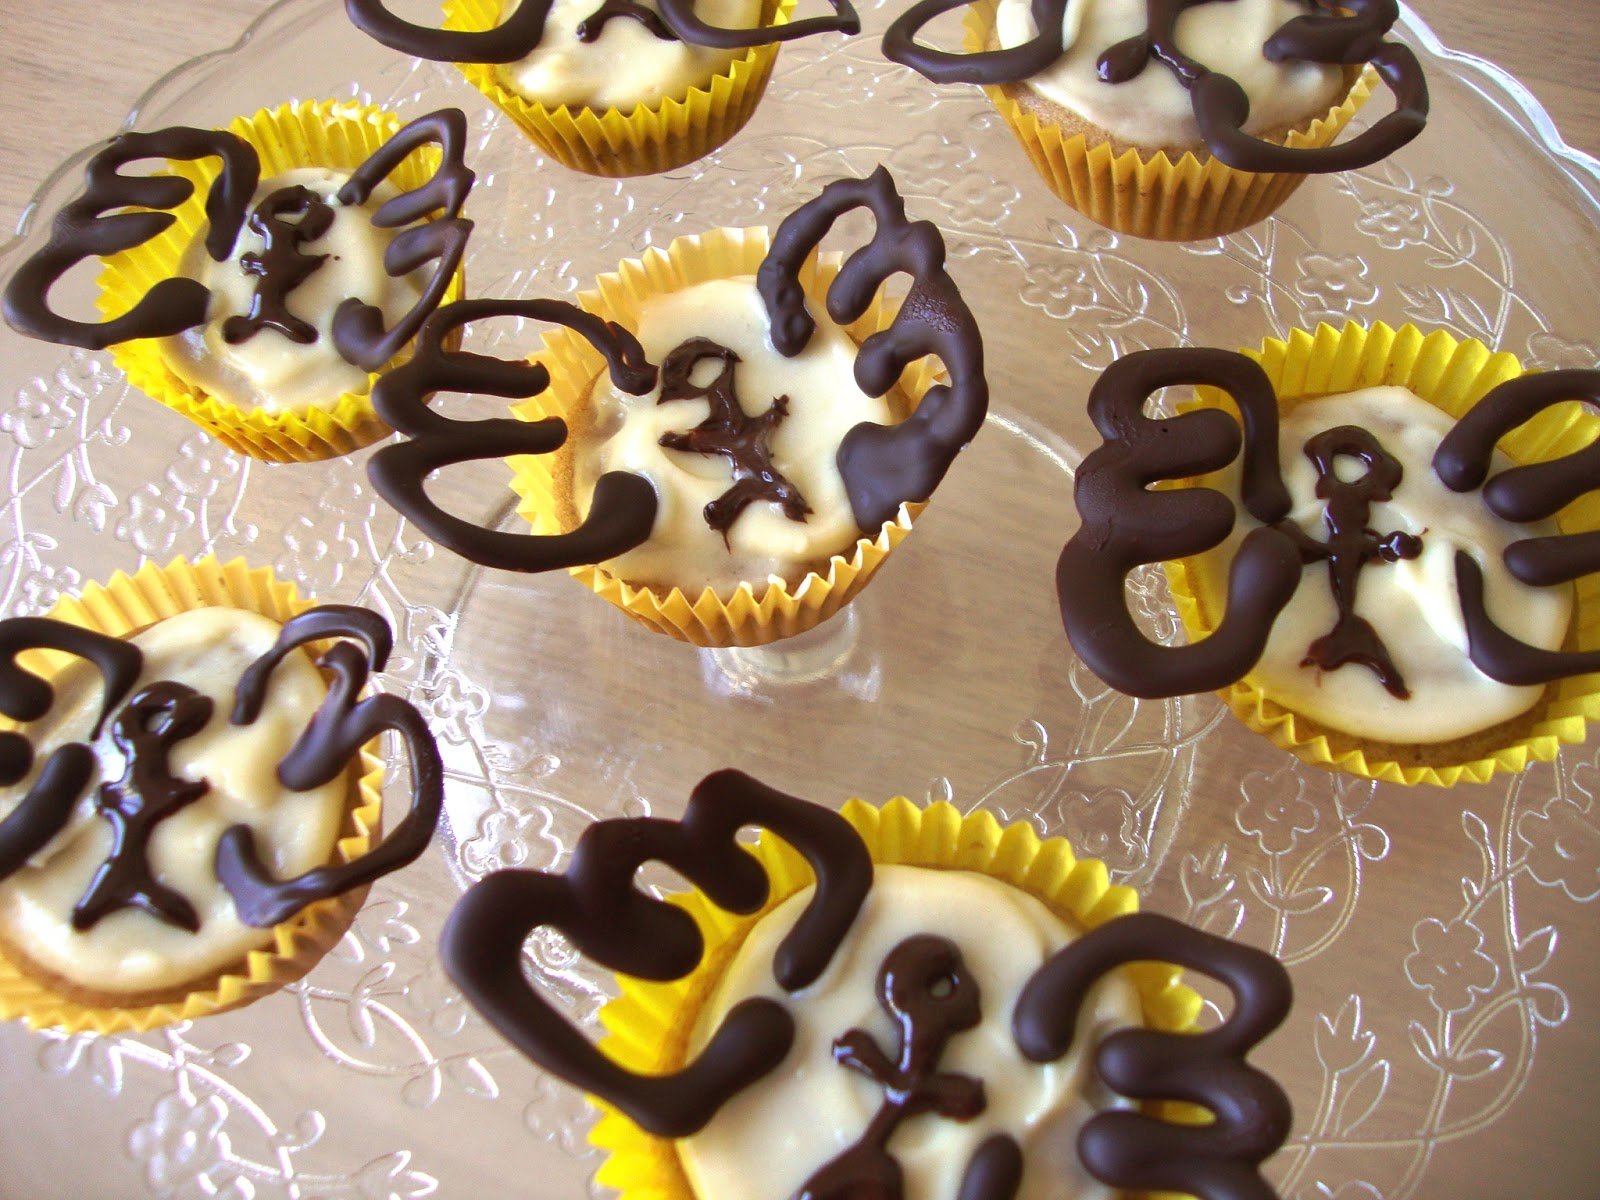 Catholic cuisine st matthew winged cupcakes a symbol for st matthew is a winged man or angel some link it to the geneology at the beginning of his gospel while others to the angel that appeared to biocorpaavc